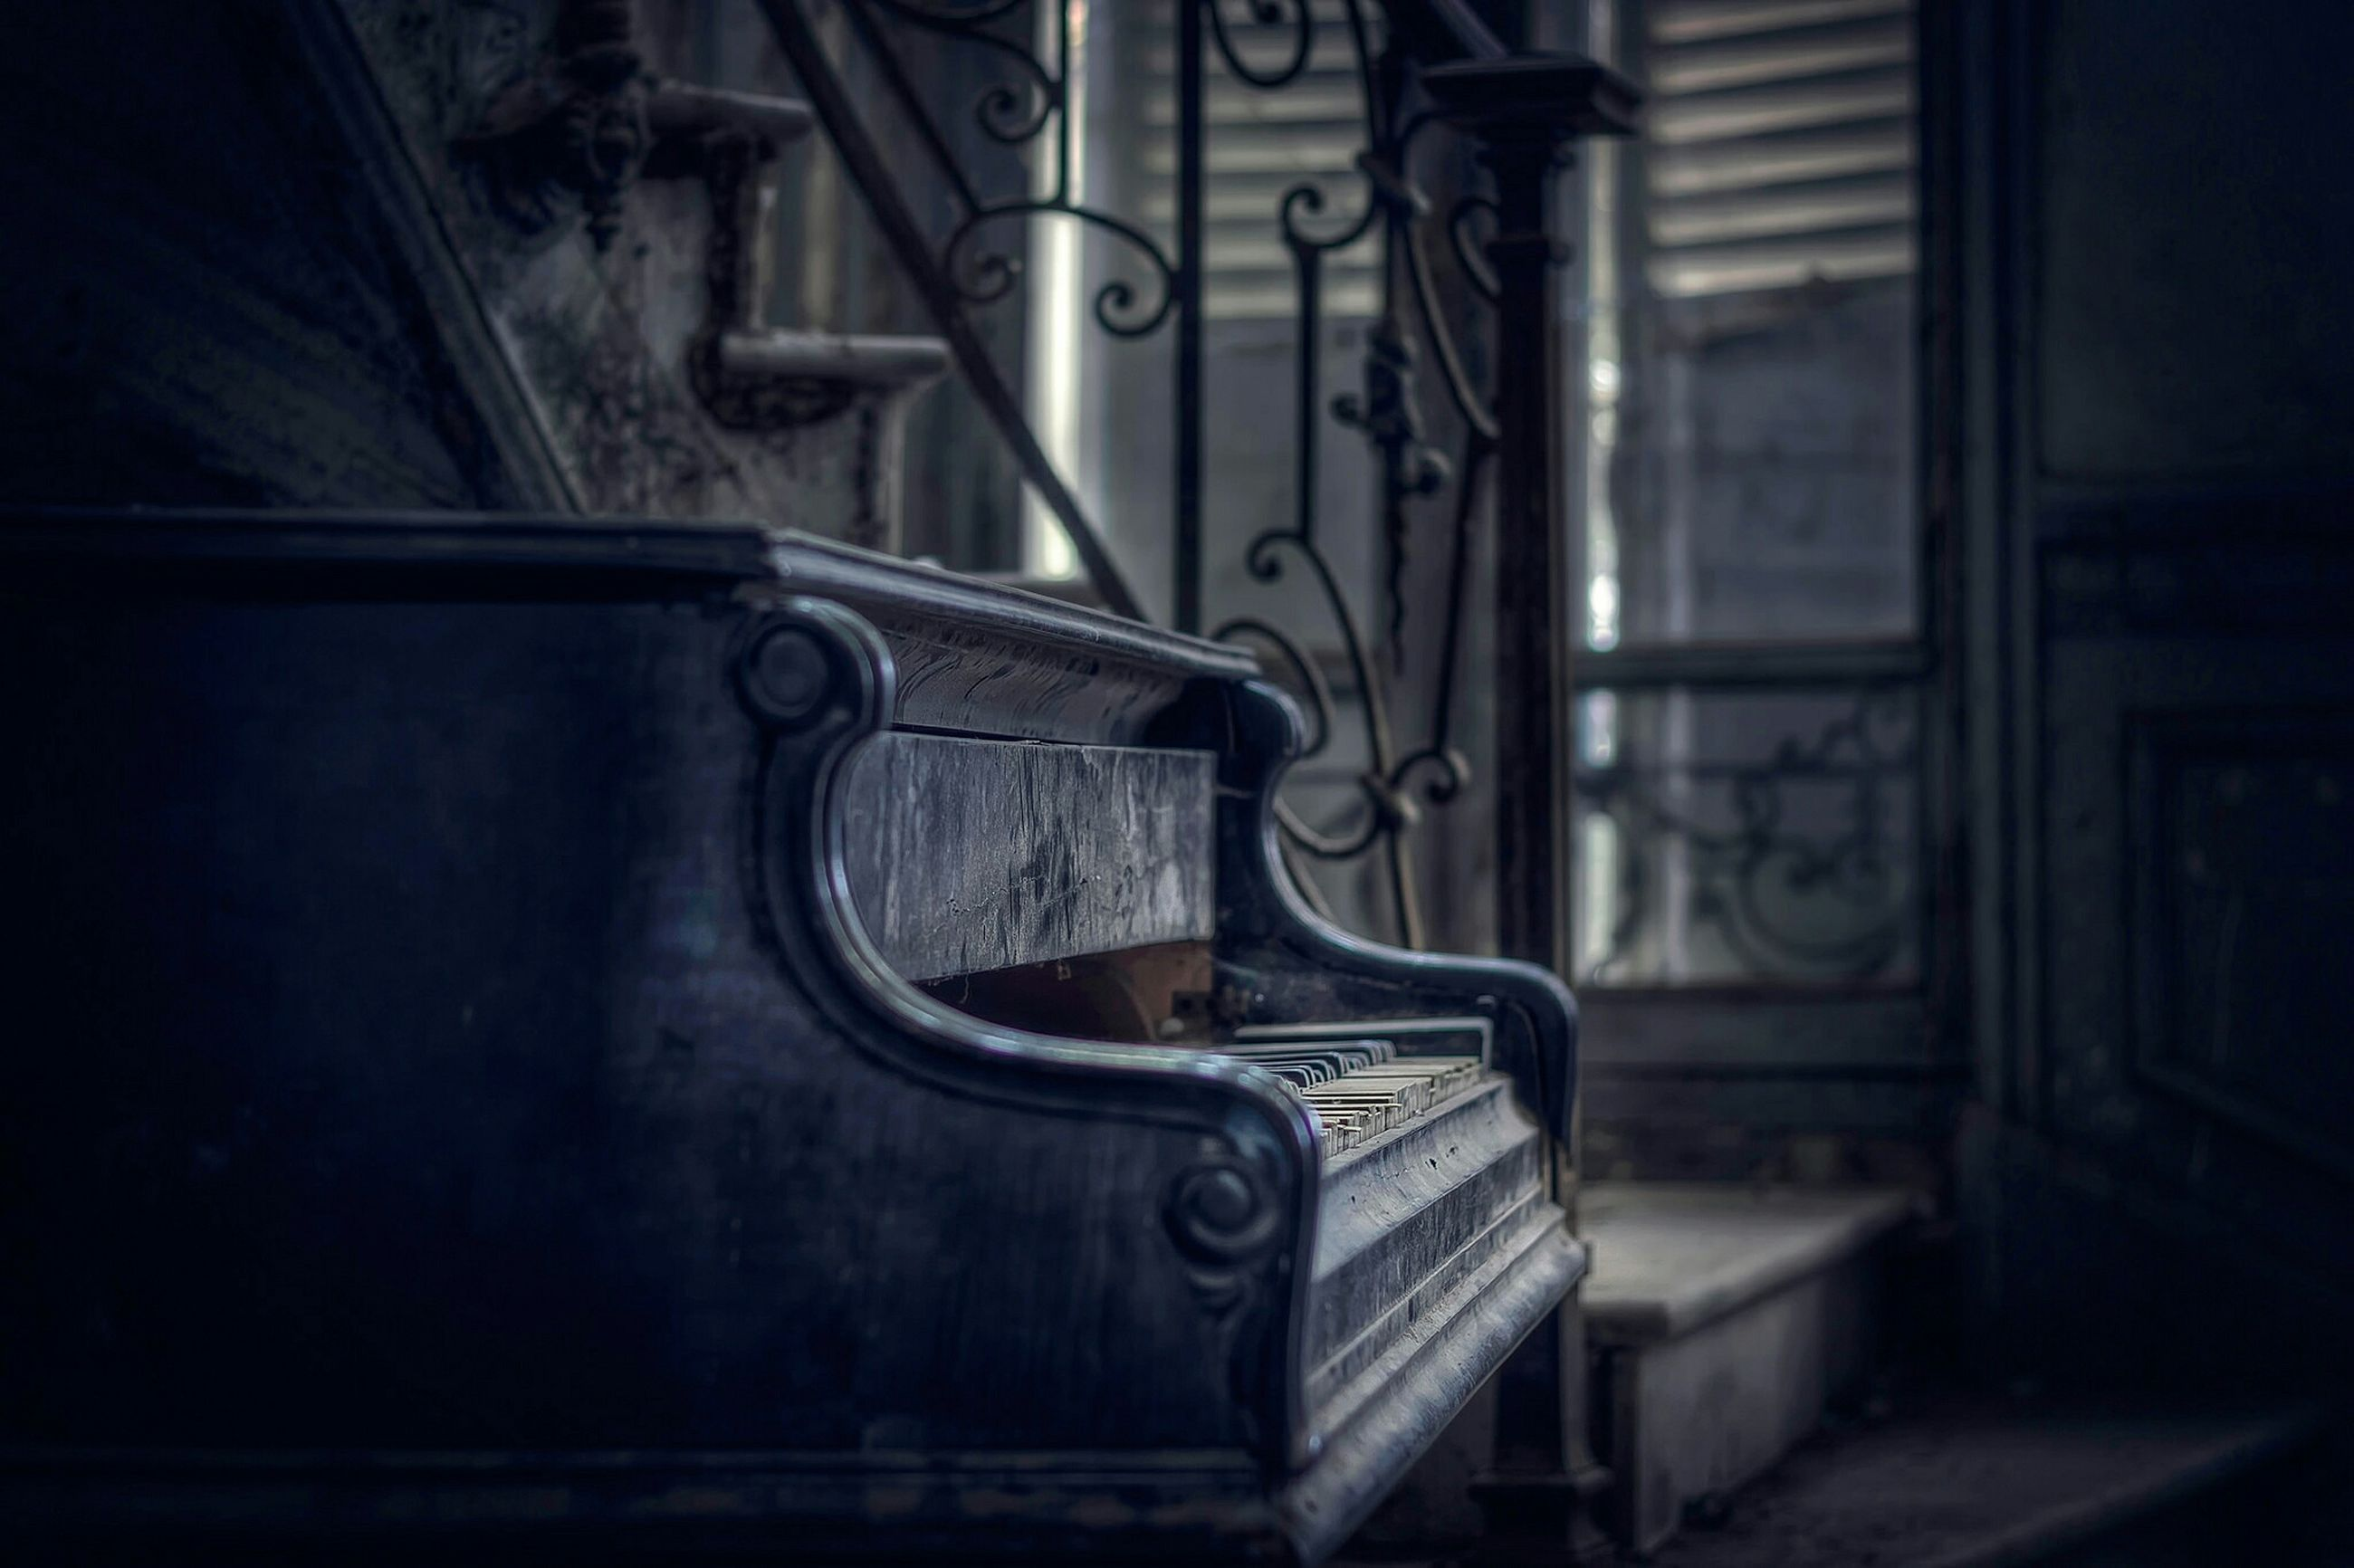 indoors, metal, close-up, focus on foreground, wood - material, door, no people, old, metallic, old-fashioned, wall - building feature, built structure, wooden, closed, railing, wood, day, home interior, sunlight, house